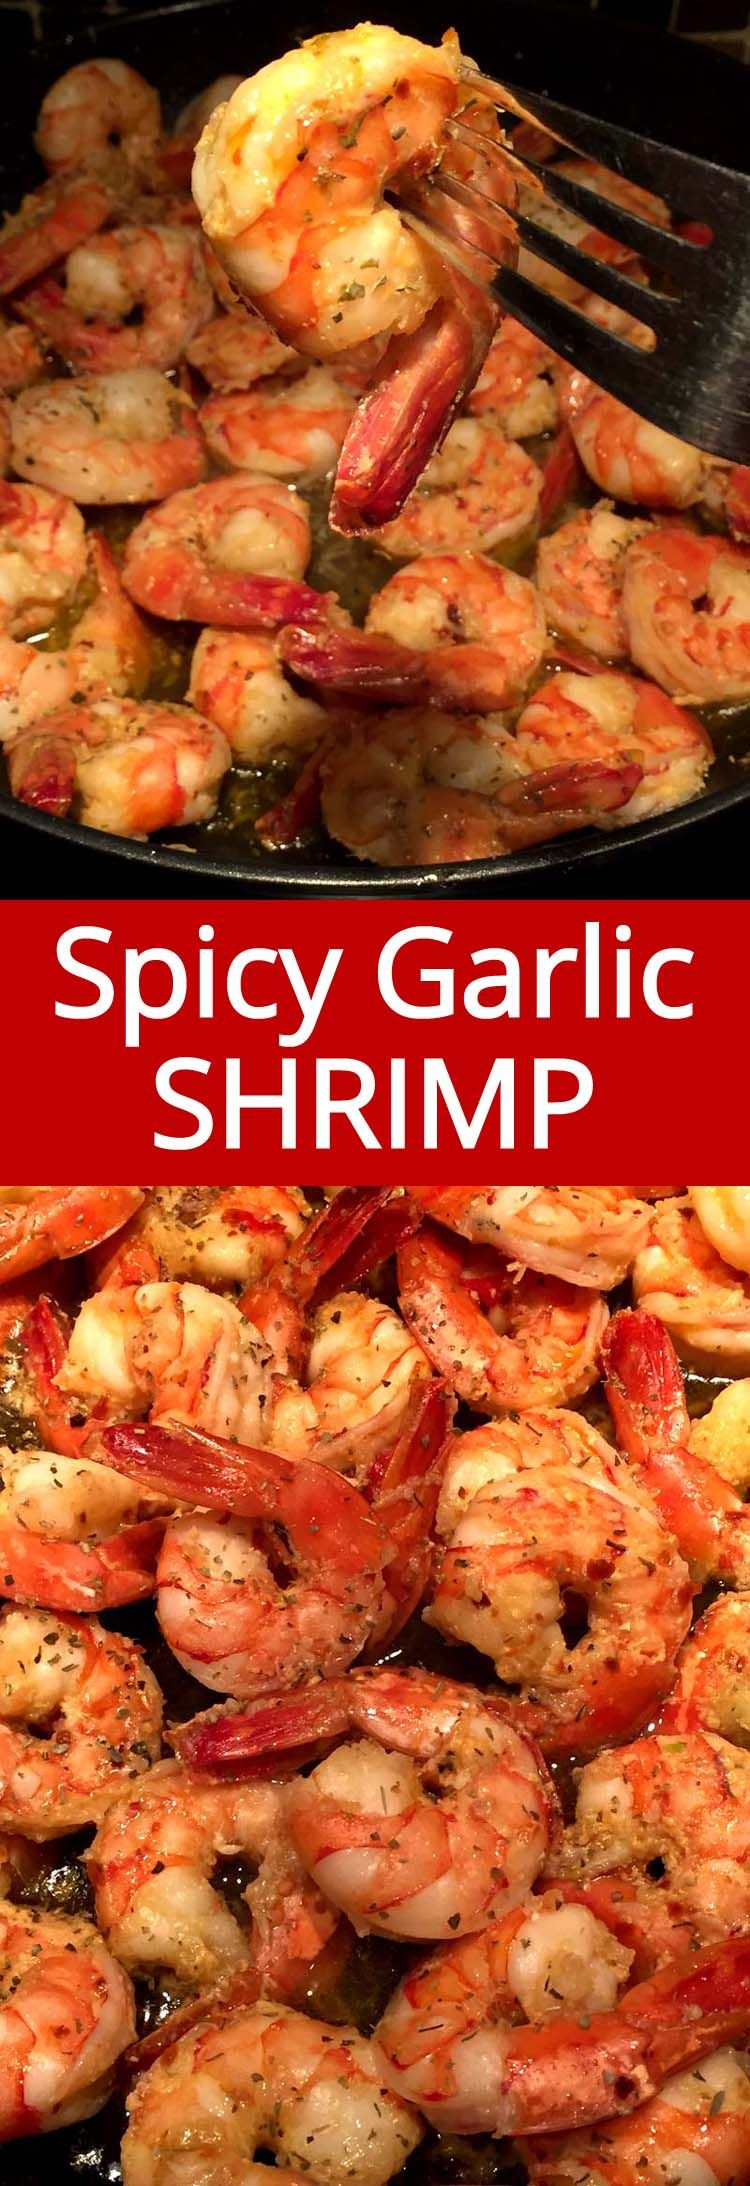 Spicy Garlic Shrimp With Olive Oil #easyshrimprecipes